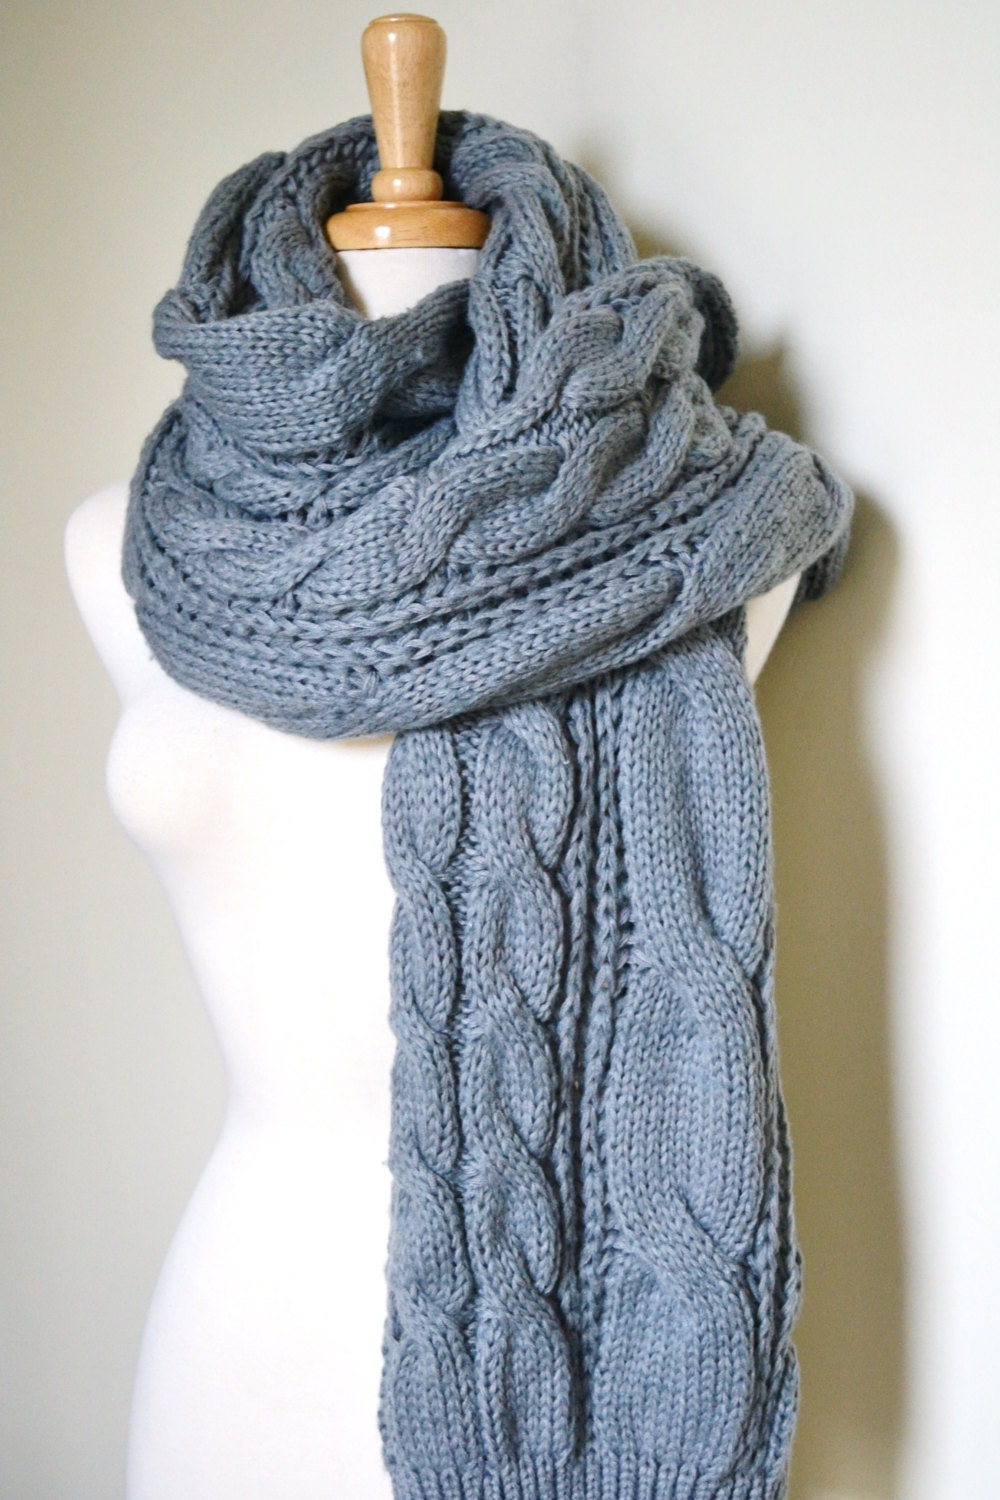 Knitting Chunky Scarves : Grey super chunky knitted cable scarf unisex cozy winter